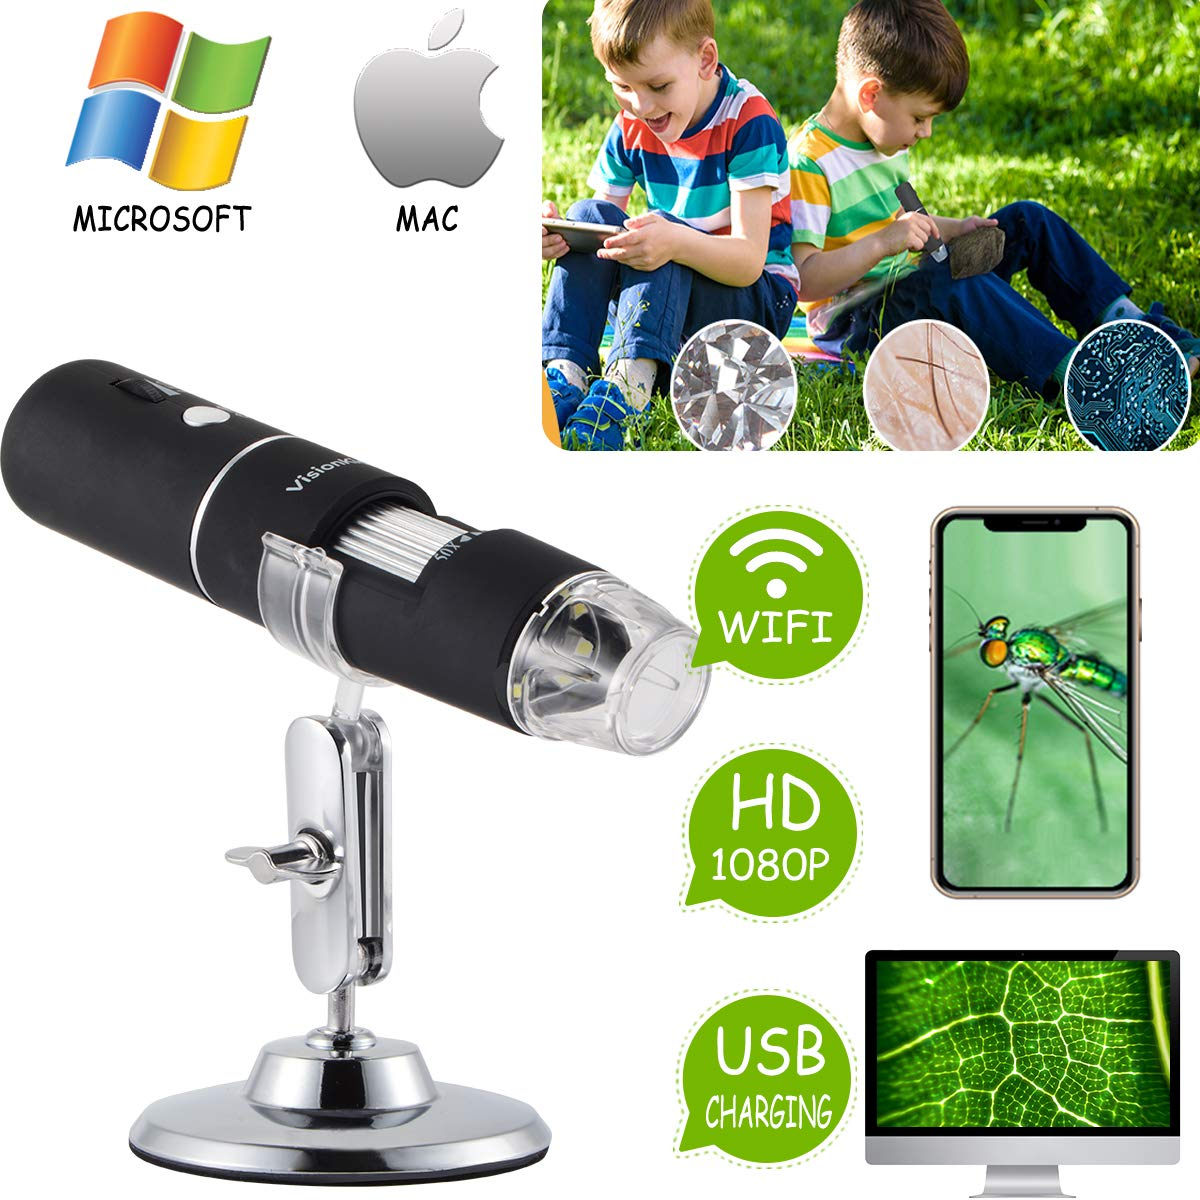 Microscope For Kids Science Wireless WiFi USB 50x to 1000x Magnification +Android, iOS, Smartphone,Windows,Mac PC,iPad + Science Toy, Educational Toy Birthday Gift For Boys & Girls